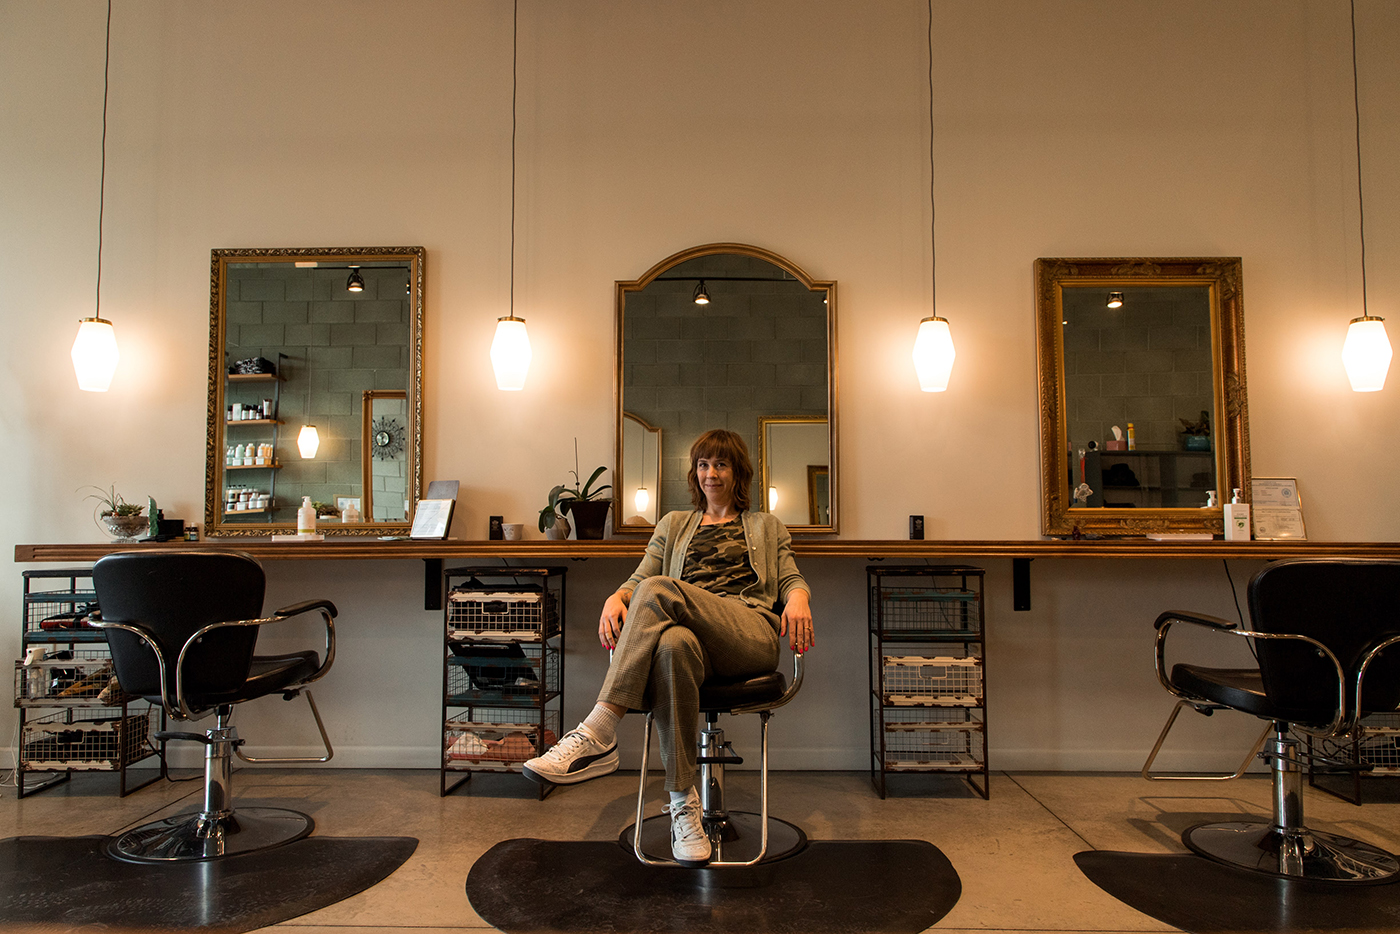 Memorie Morrison is a hairstylist, Owner of Central Ninth's Troubadour salon and she's known for her band ¡andale!.